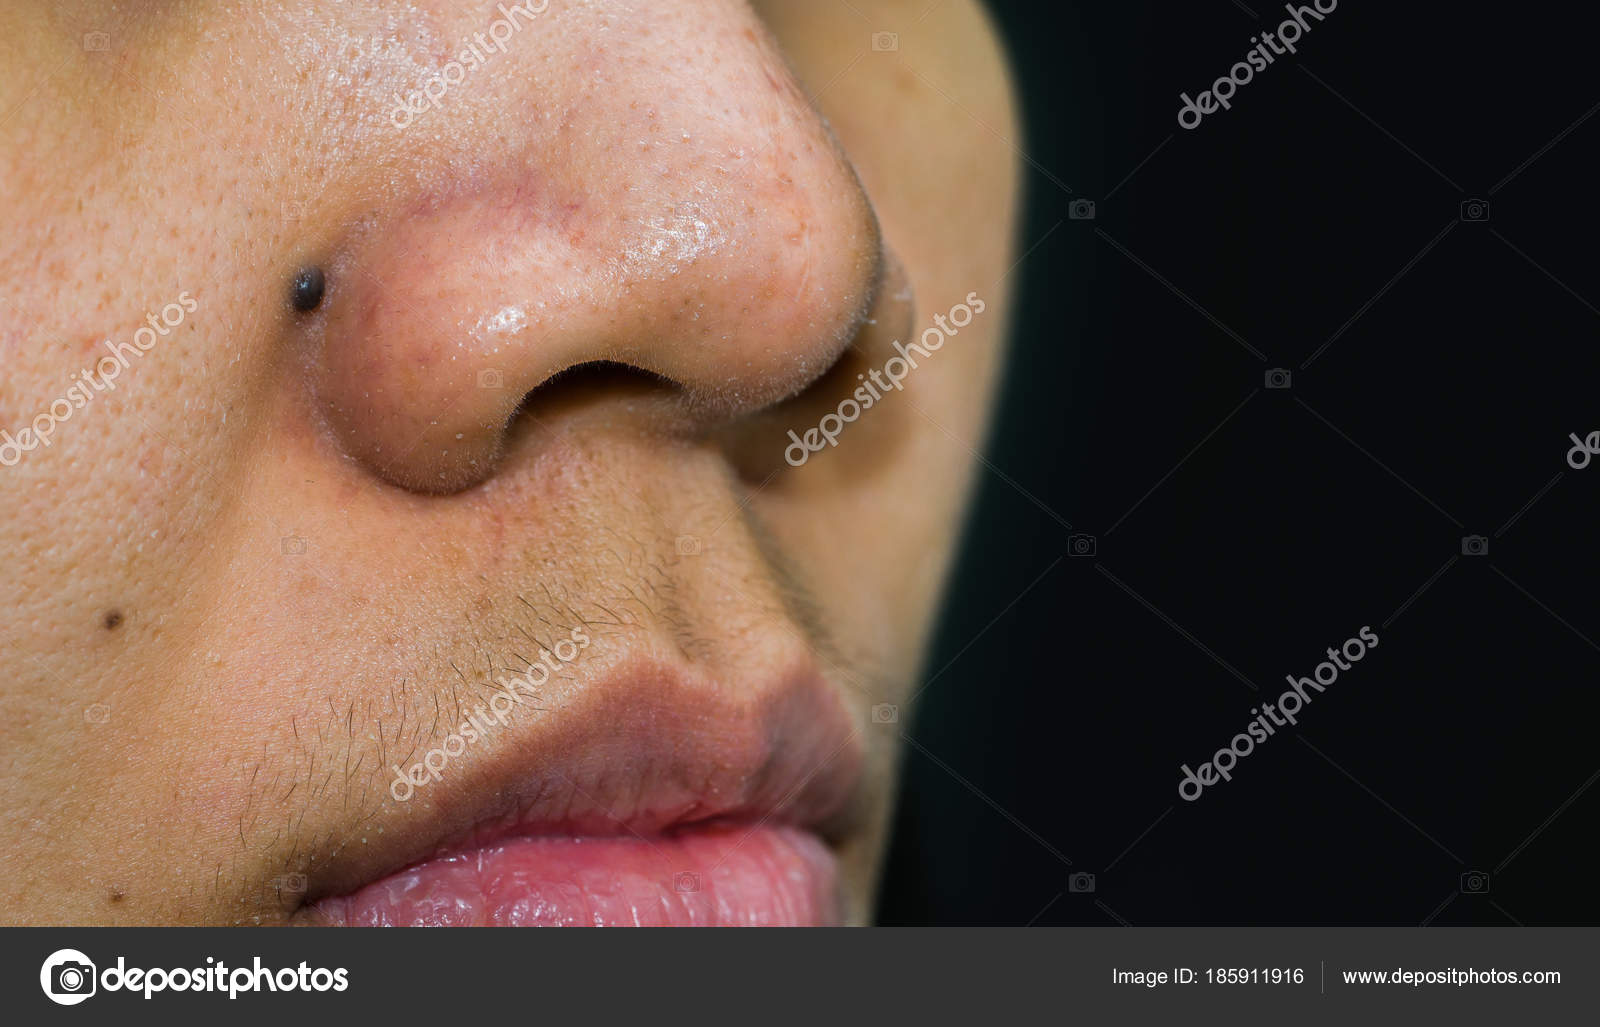 Black mole behind nose need CO2 Laser to removal  Blackheads